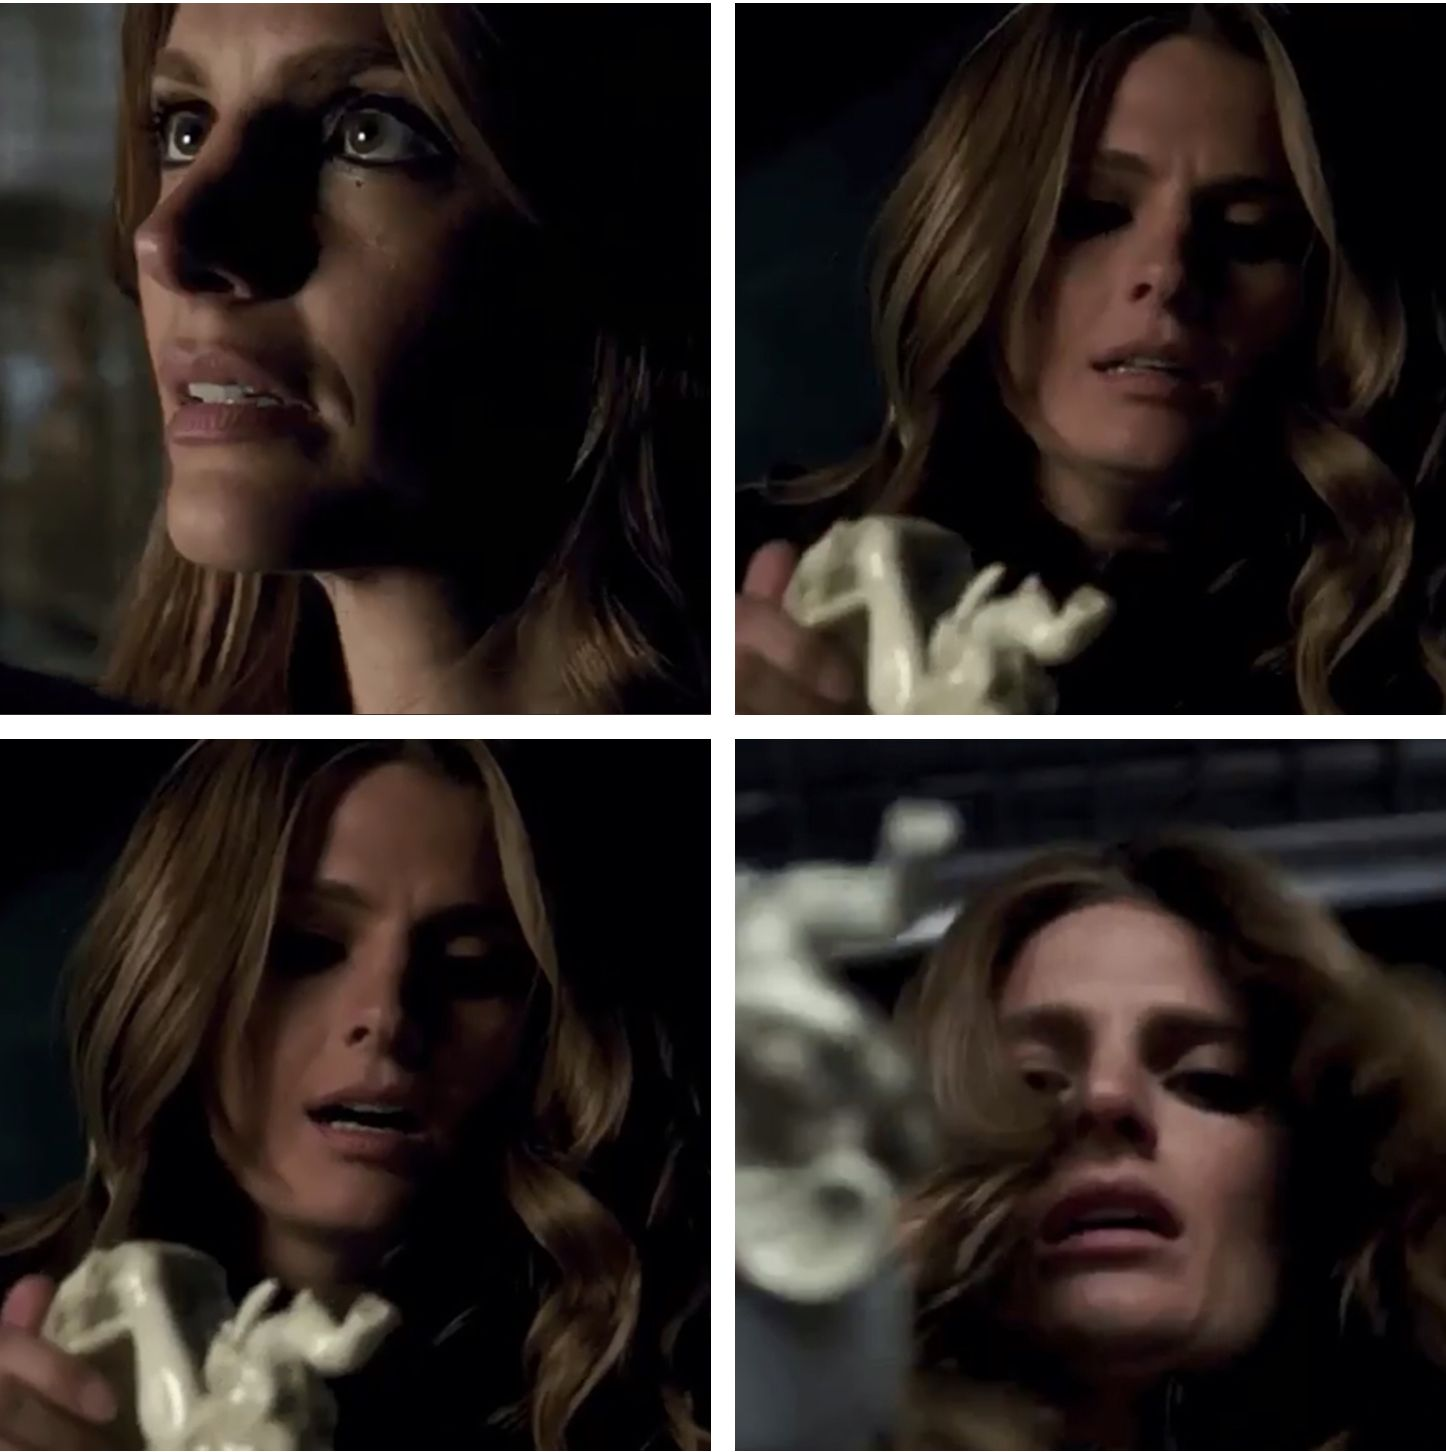 Pin By Heike Peters On Castle Stana And Nathan Kate Beckett Castle Tv Series Stana Katic